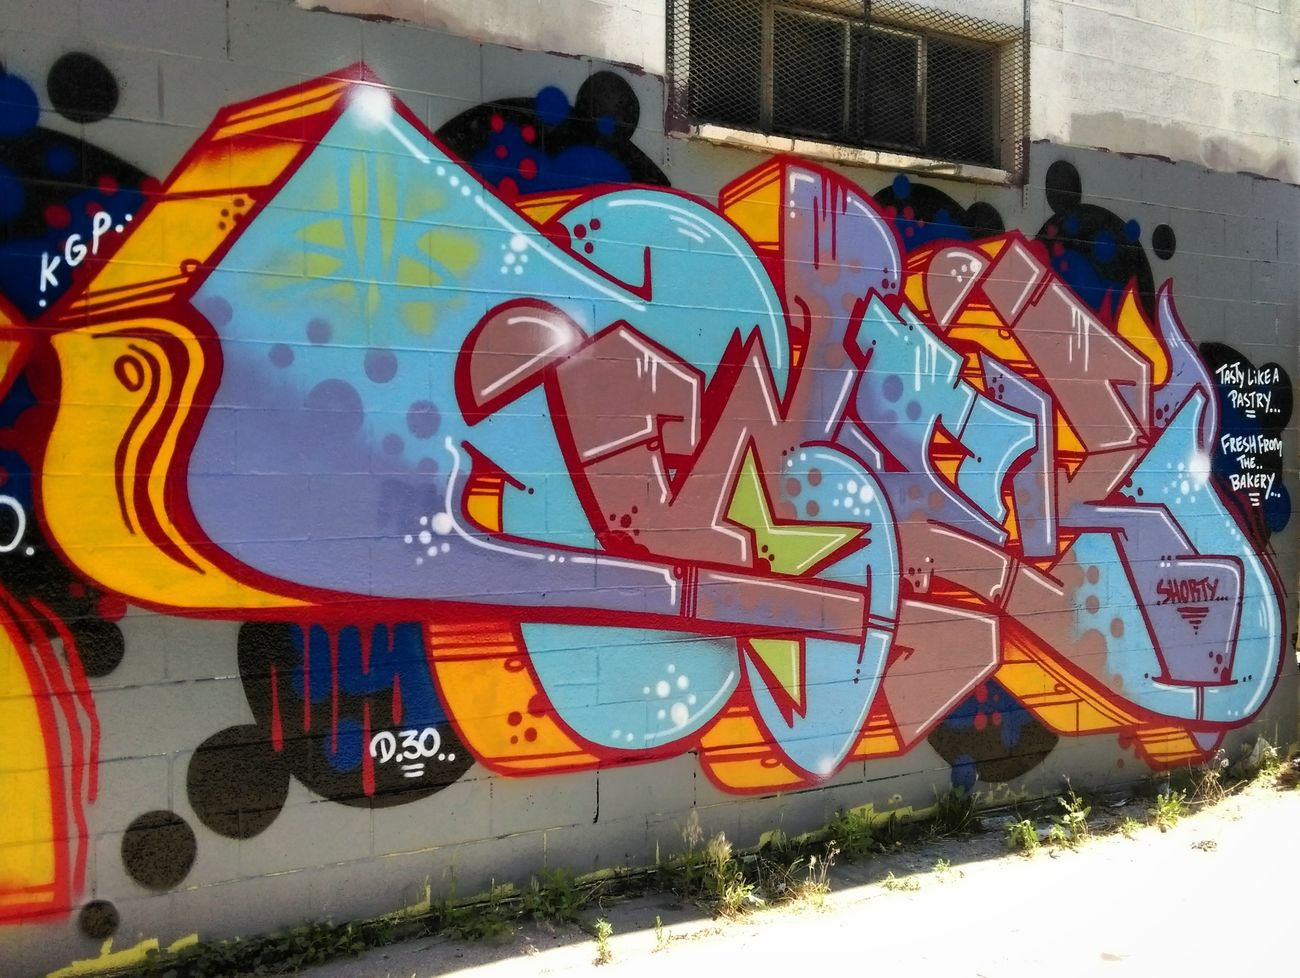 Taking Photos Denvergraffiti Graffhunter Eyem Streetart/graffiti Graffiti Check This Out Photography Swek Sws